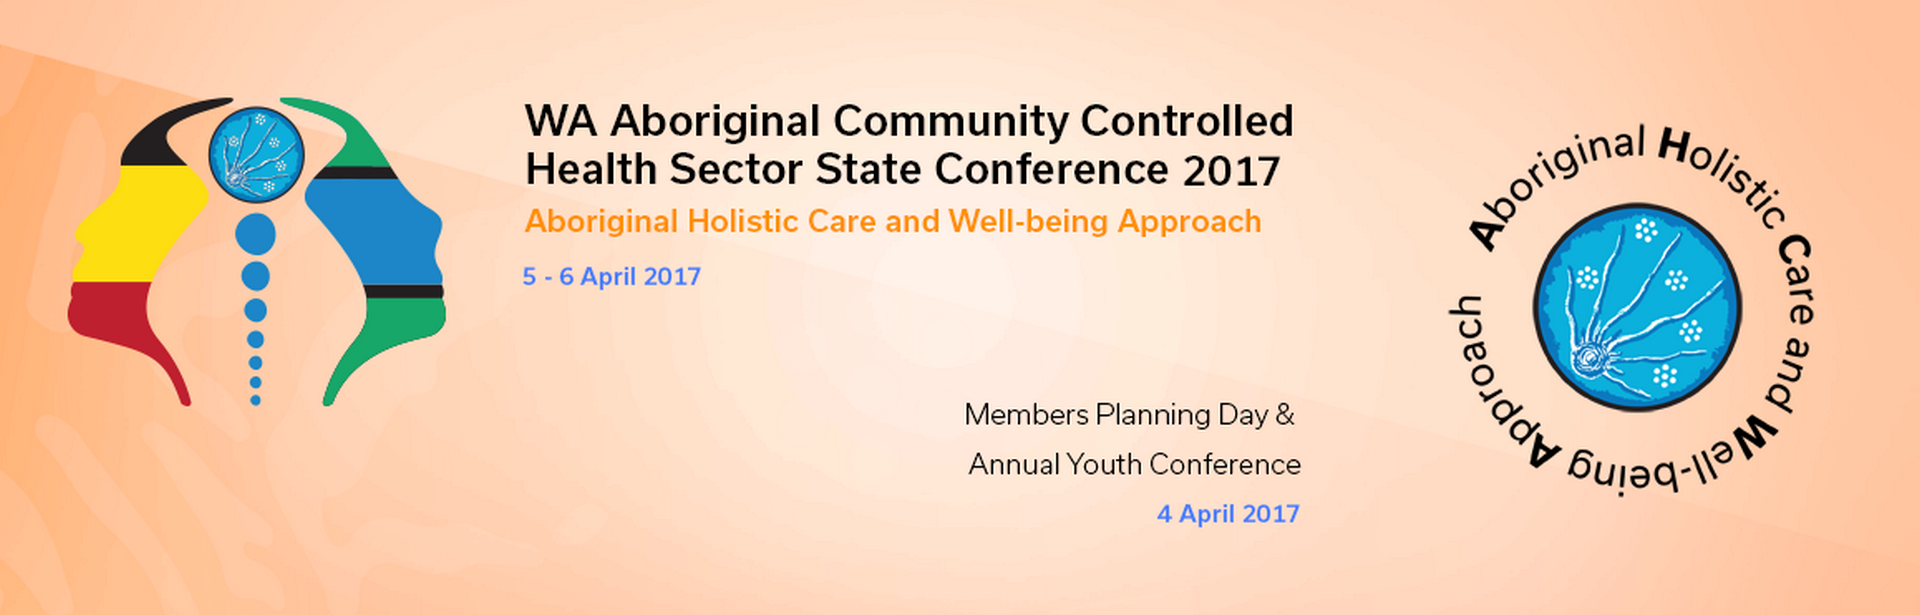 Aboriginal Health: Our Culture, Our Communities, Our Voice, Our Knowledge